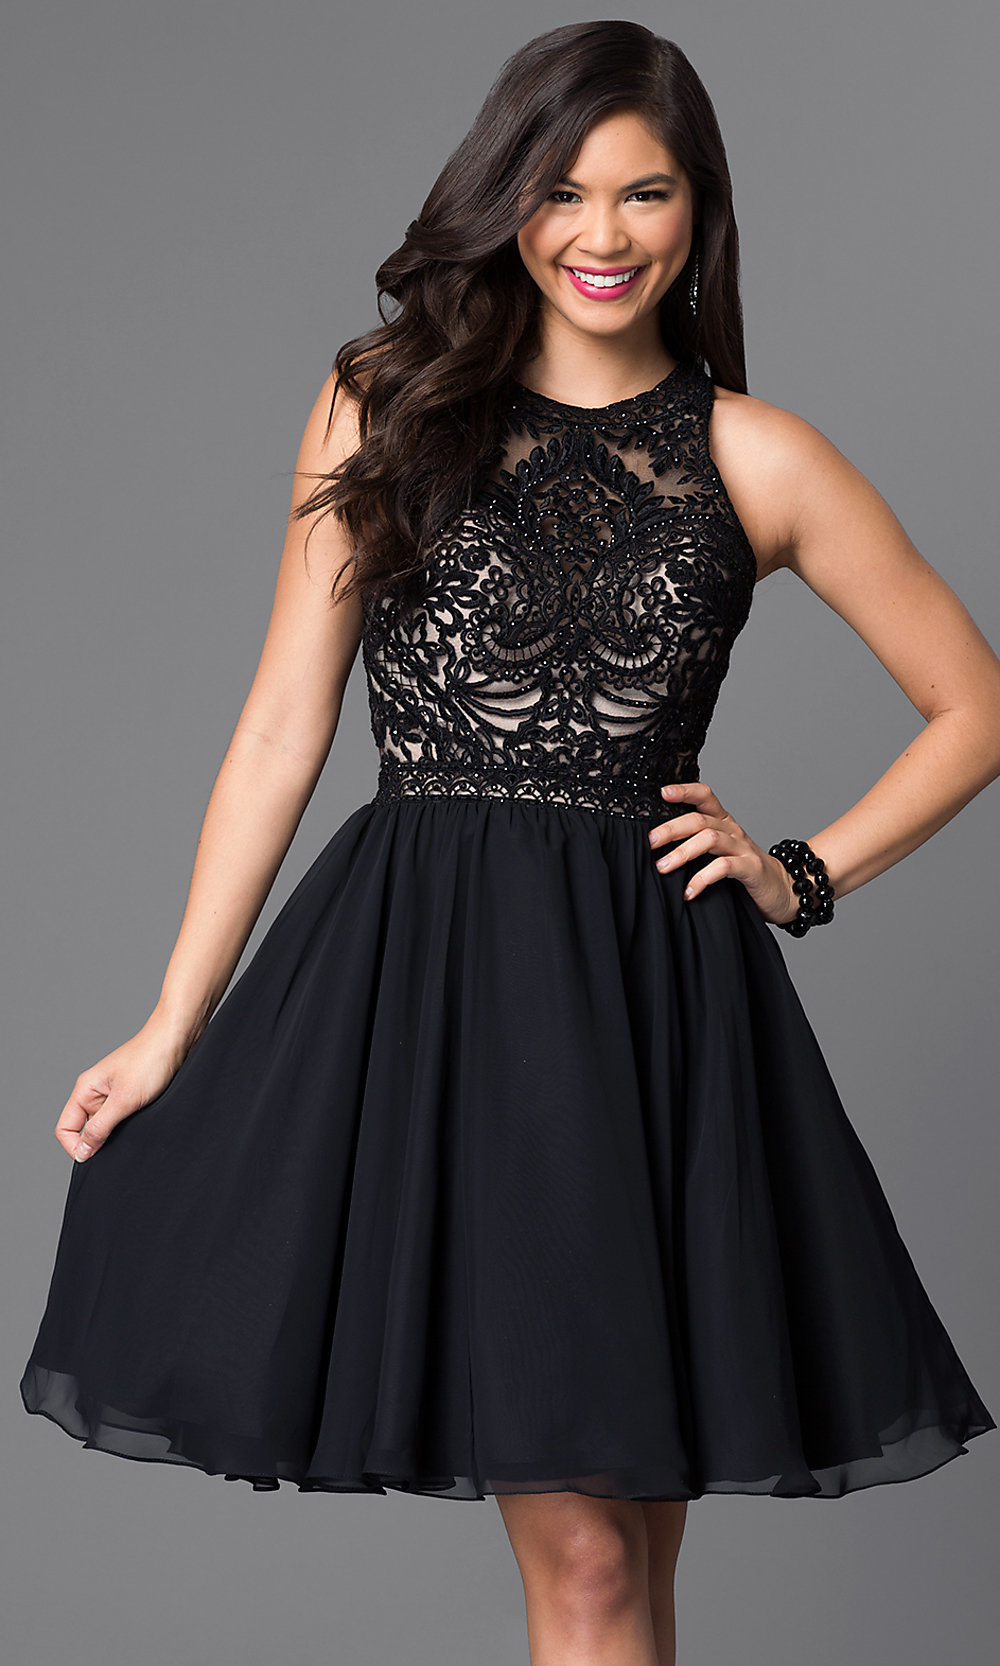 Why not be fashion-forward in an off the shoulder knee length glitter dress, or coordinate your Kentucky Derby Hat with a classic knee length peplum dress. A knee length semi formal dress in a junior size with a bow or cap sleeves would be just right for an eighth grade dinner dance, bridesmaid or .